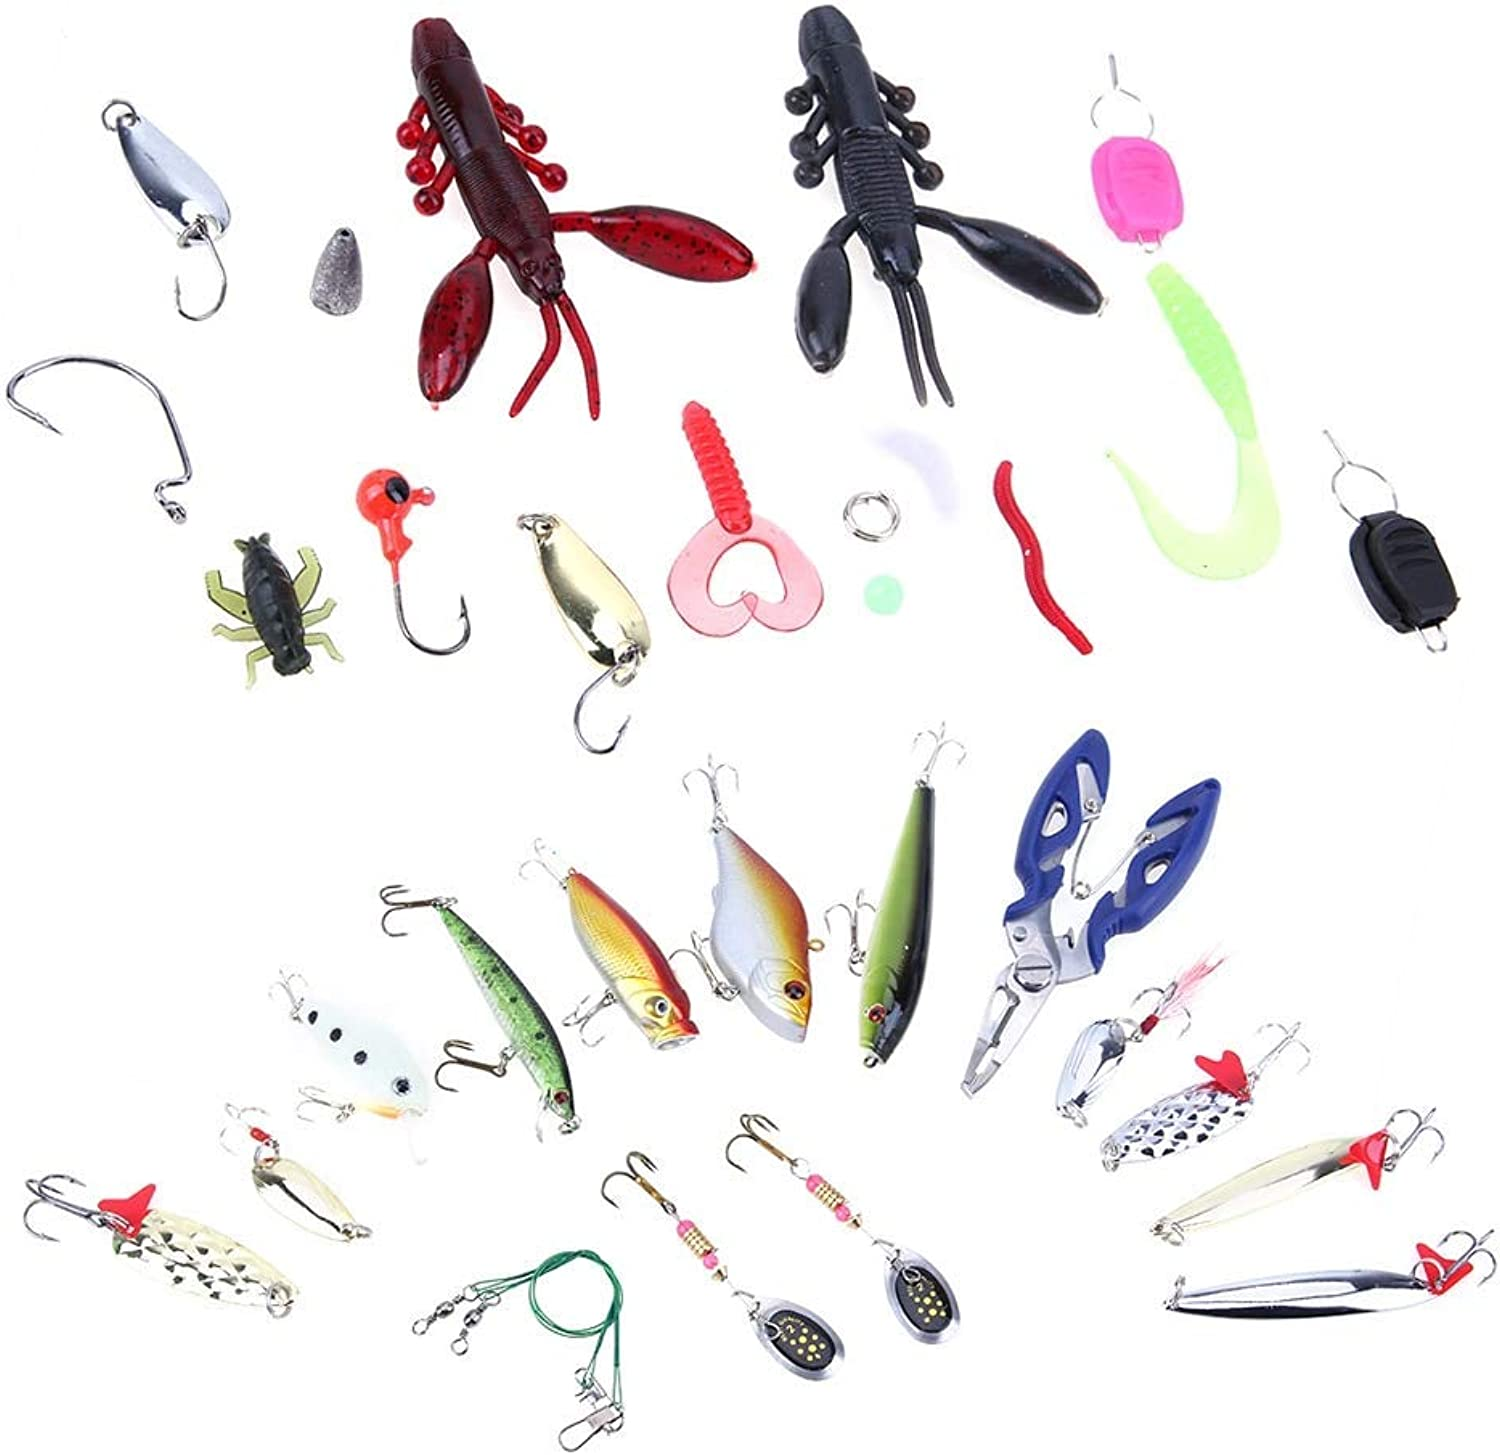 Sellify Fishing Lures  101pcs set Fishing Lures Crankbaits Set Kit Soft and Hard Lure Hooks Trout Bass Fishing Lures Hooks Set with Box